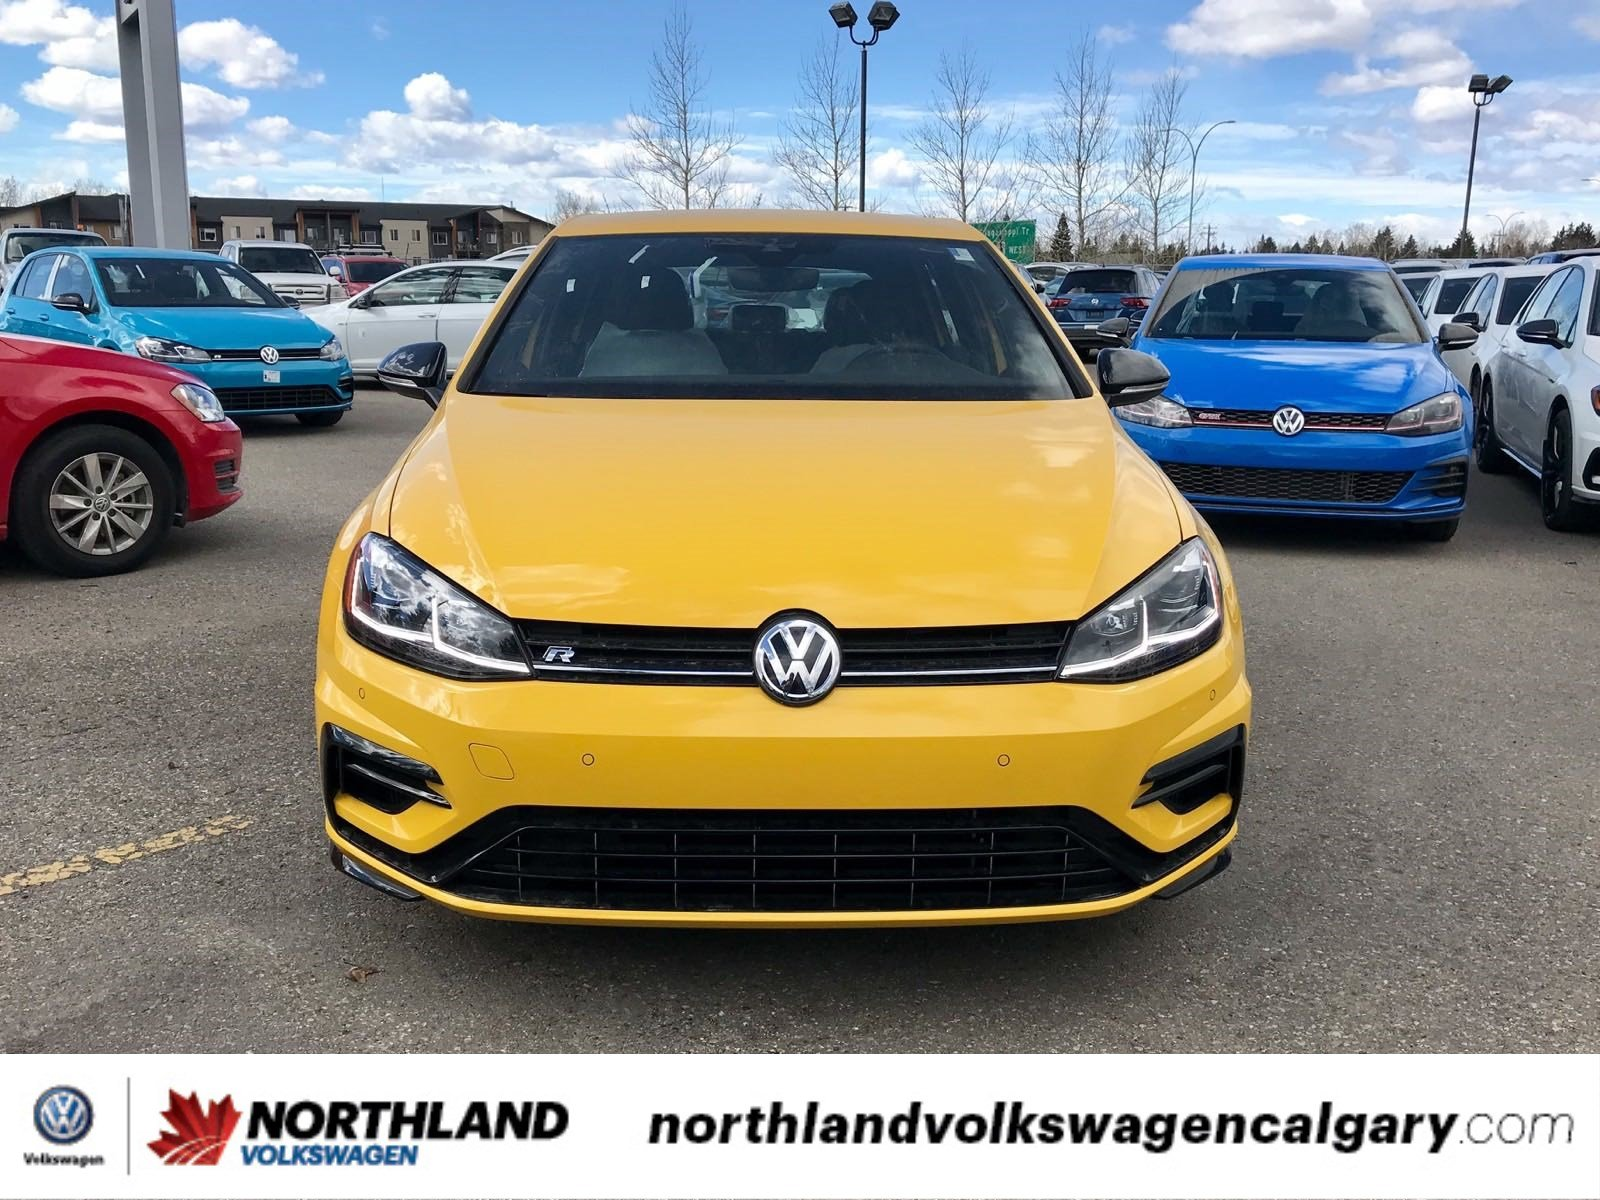 L132, 9150 - GINSTER YELLOW, GINSTERGELB (GOLF R)-1.jpg